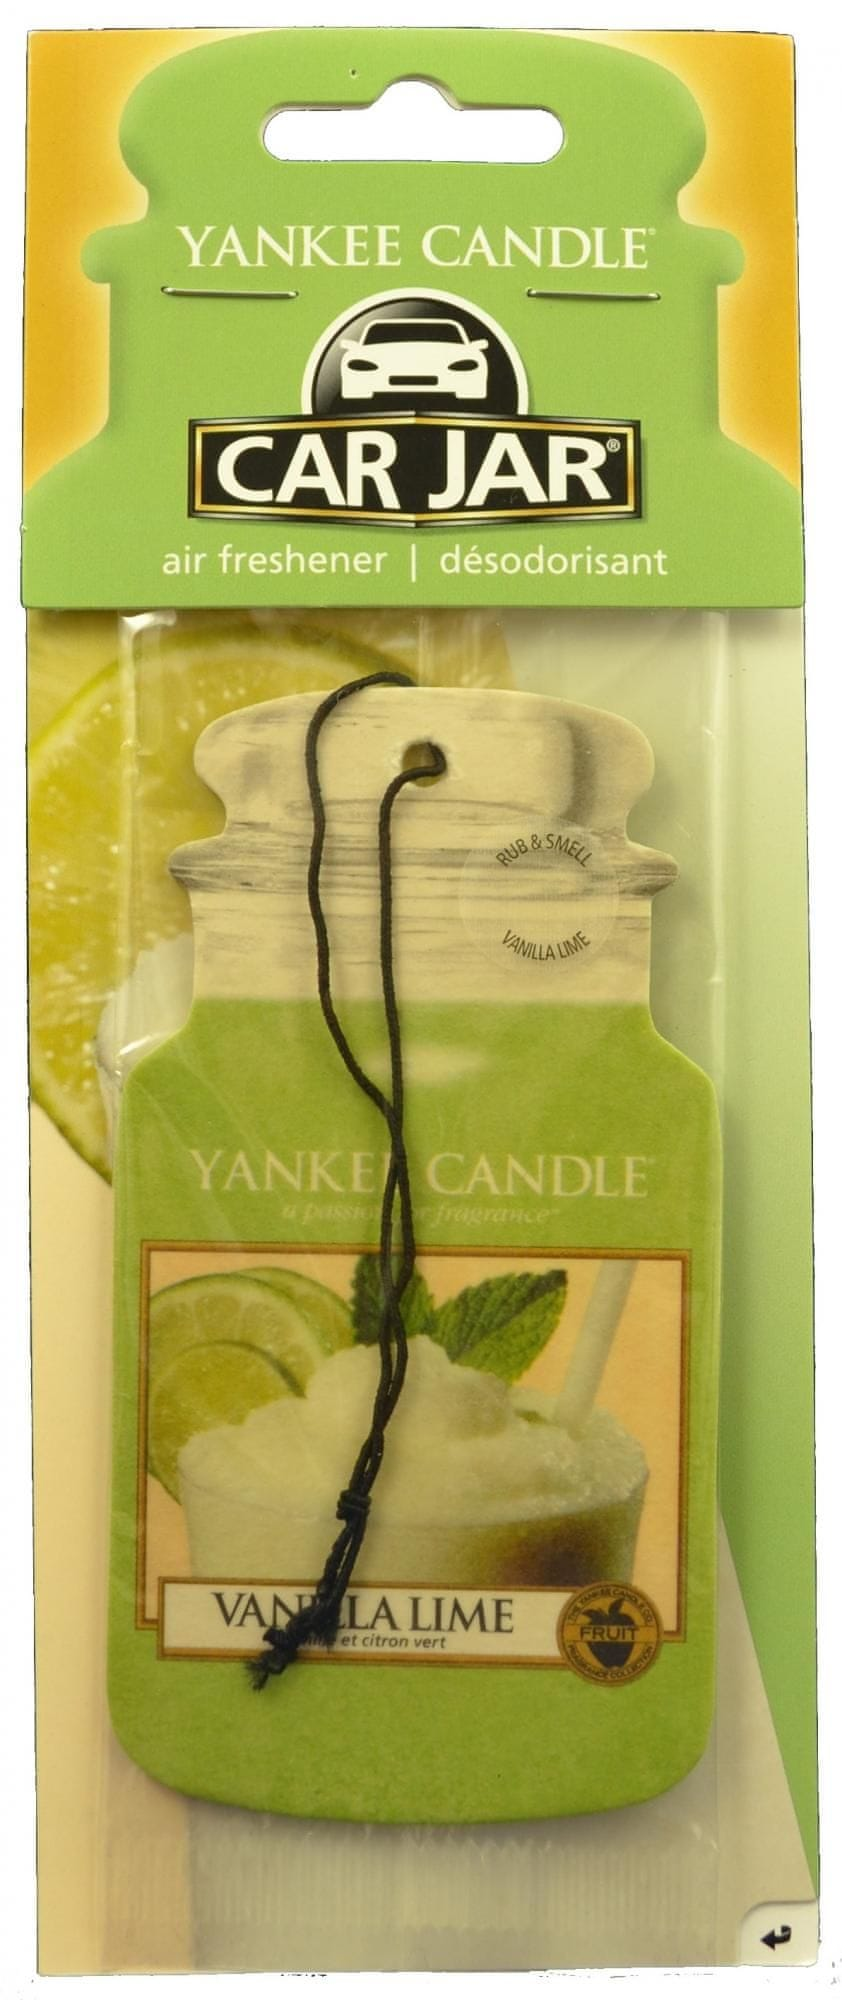 Yankee Candle Car Jar Vanilla Lime papírová visačka do auta 1 ks